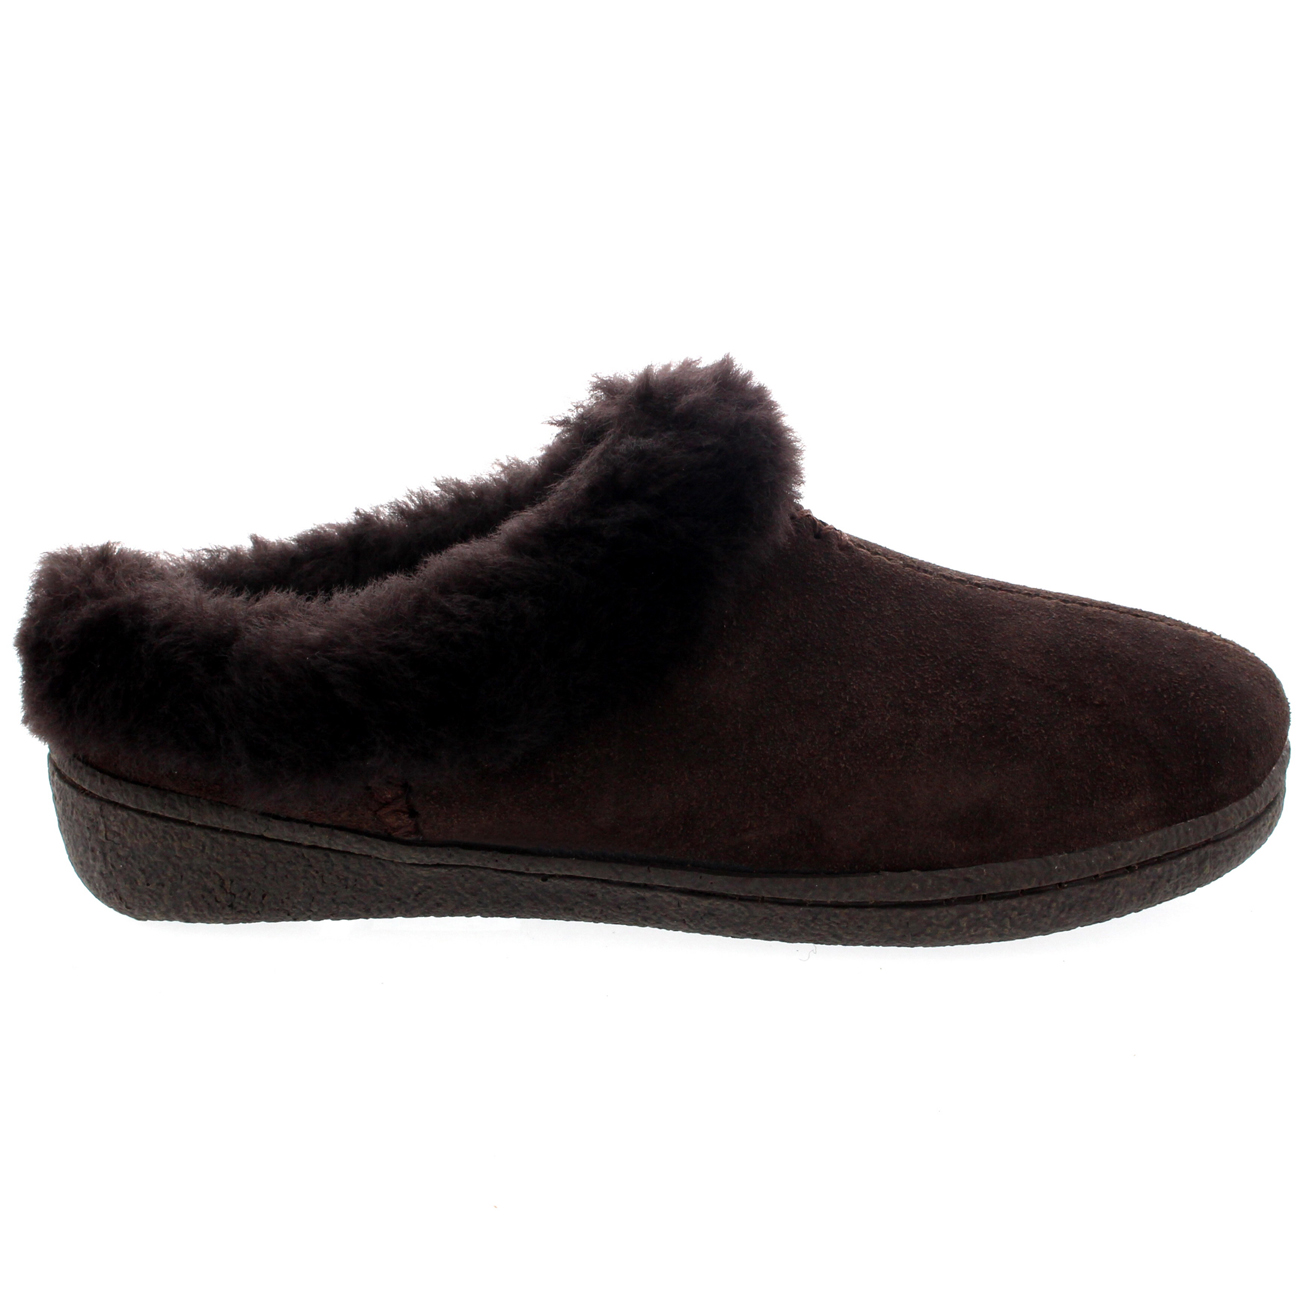 Fur Lined Womens Slipper Shoes Mules